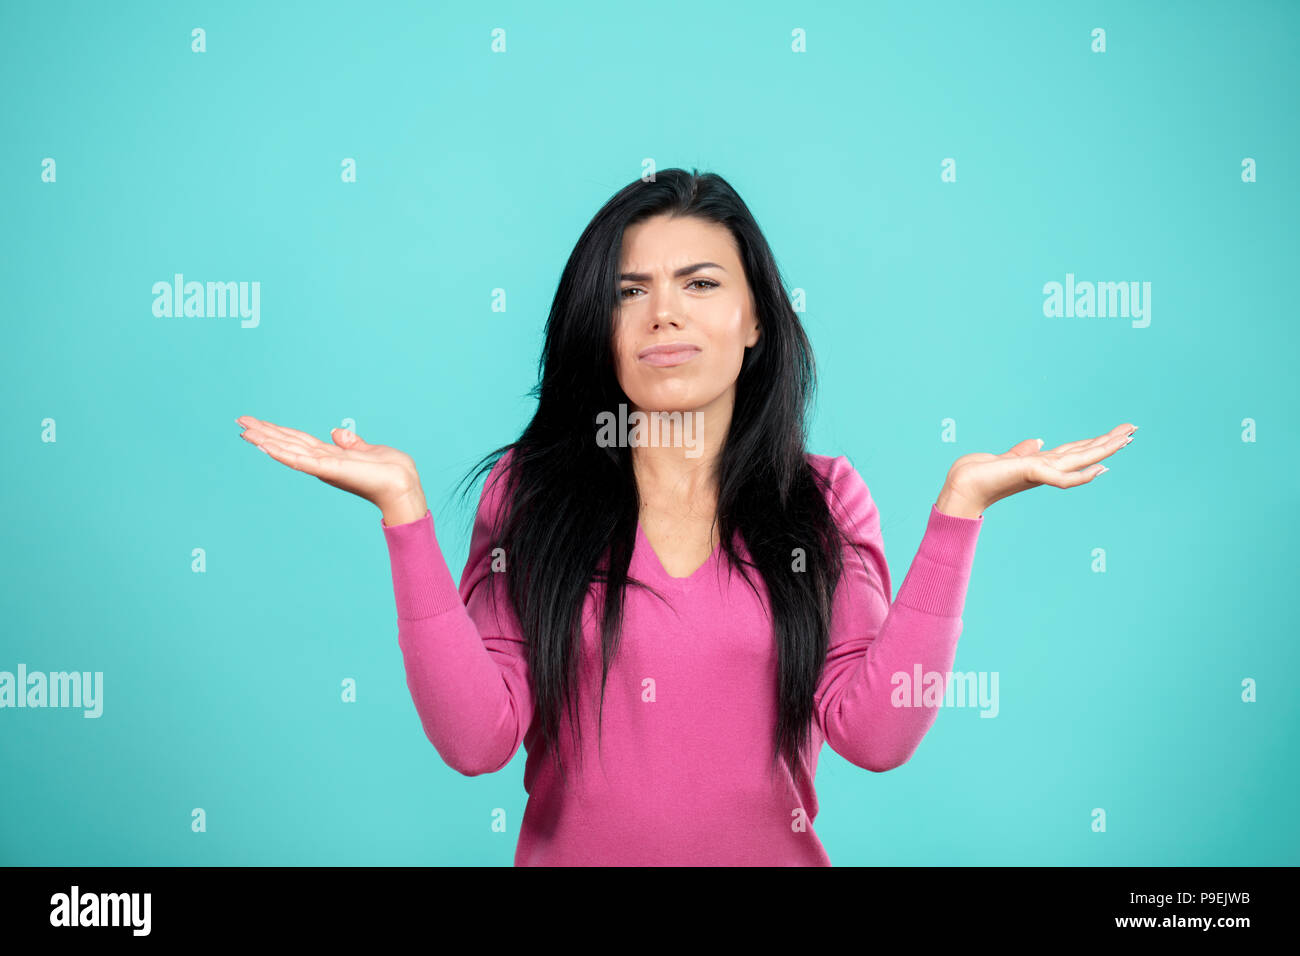 disinterest concept. woman displaying insensibility. sit loose - Stock Image